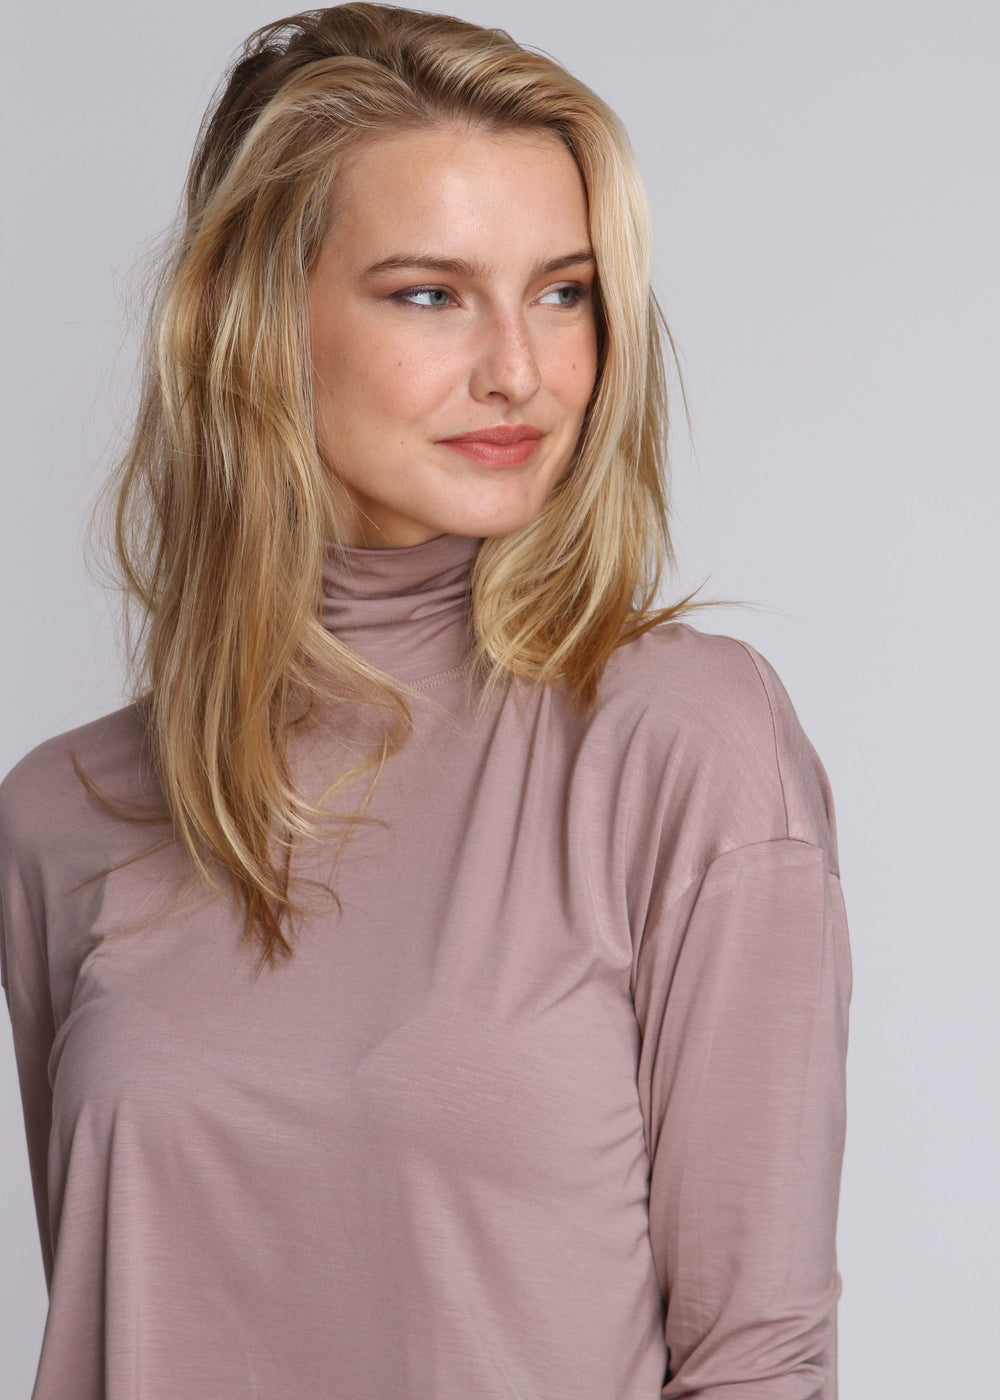 Polar T - Taupe - The Frock NYC